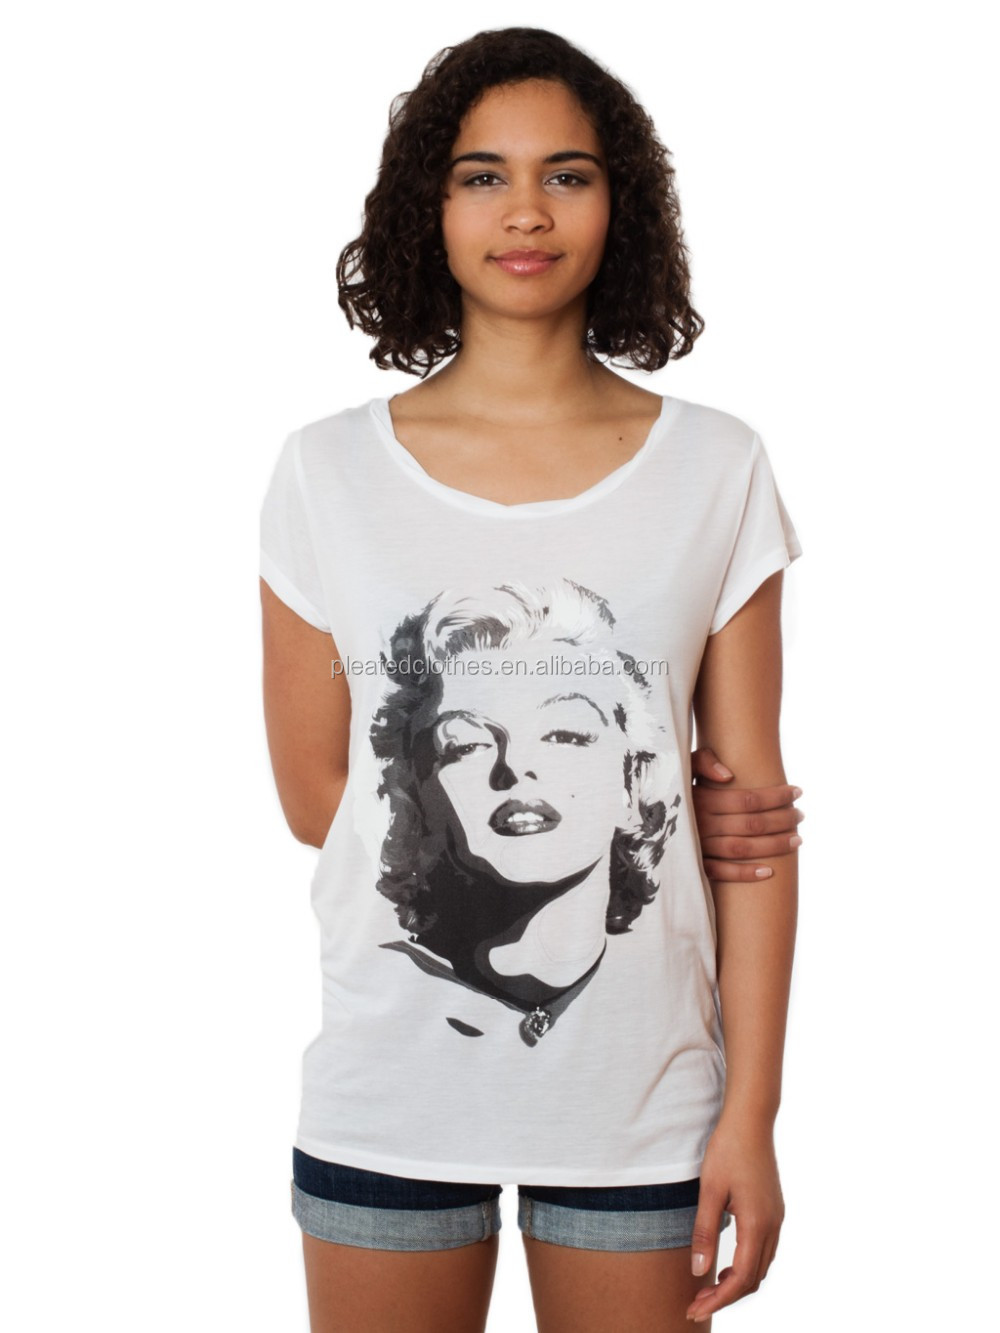 Brand new latest shirt designs for women wholesales